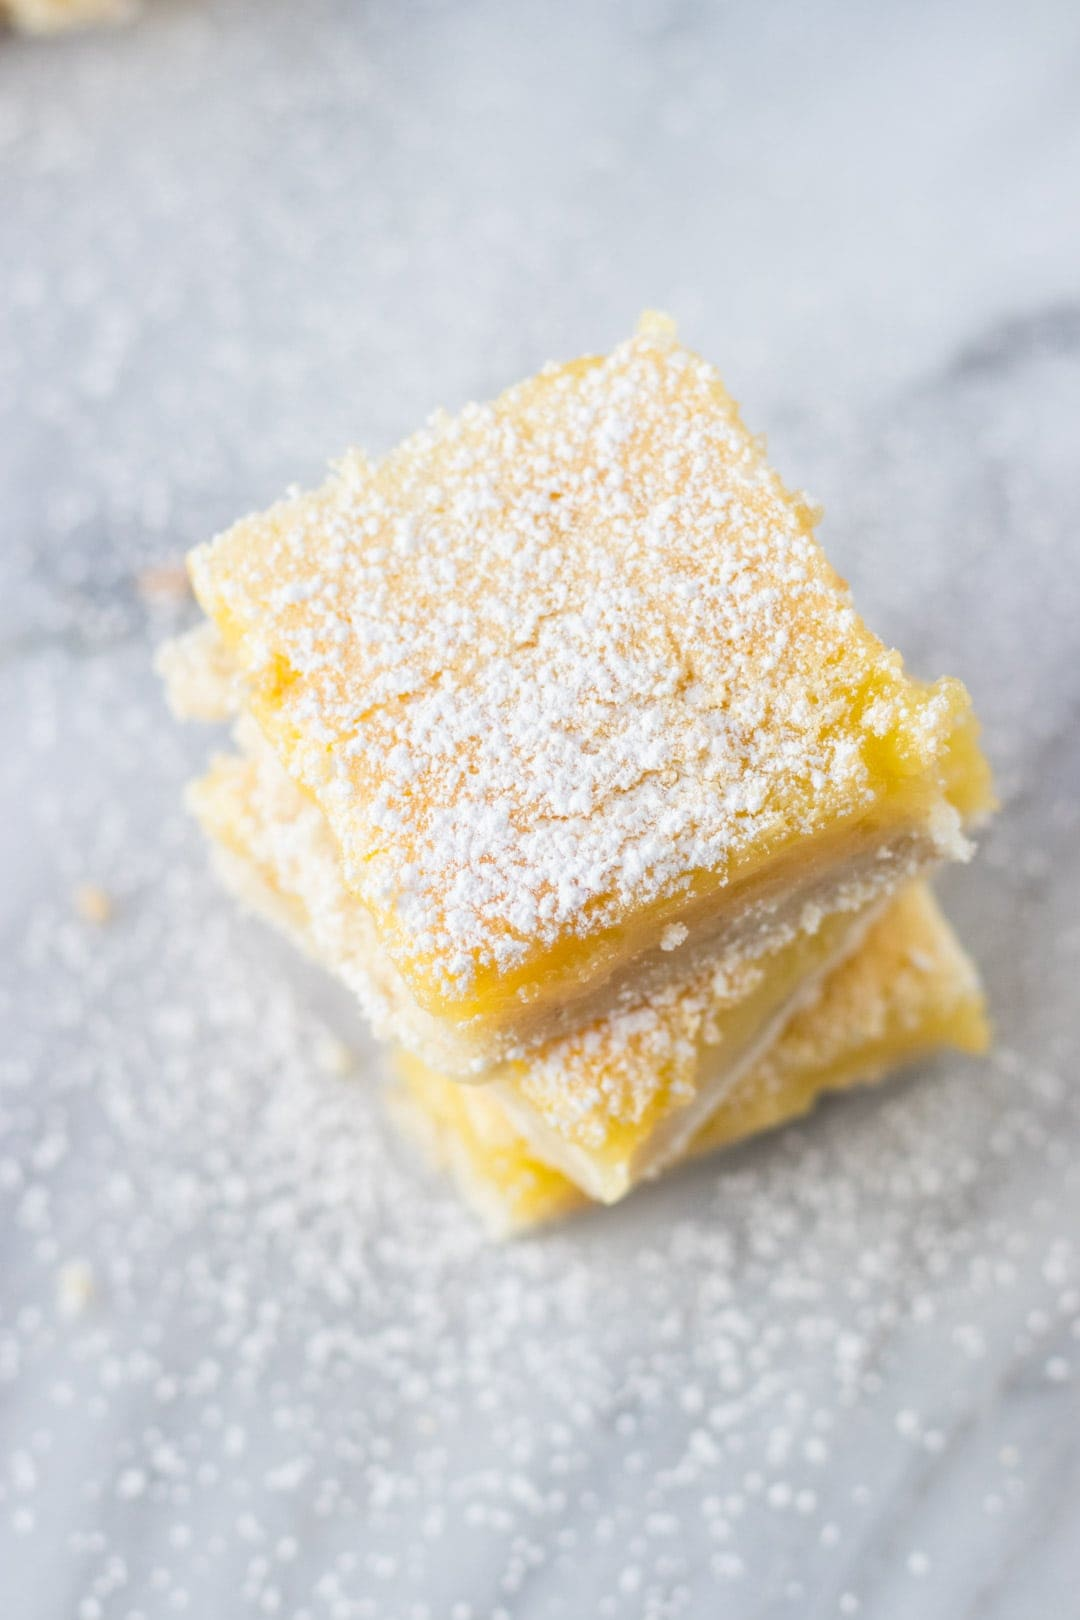 Stack of low FODMAP lemon bars dusted with powdered sugar.